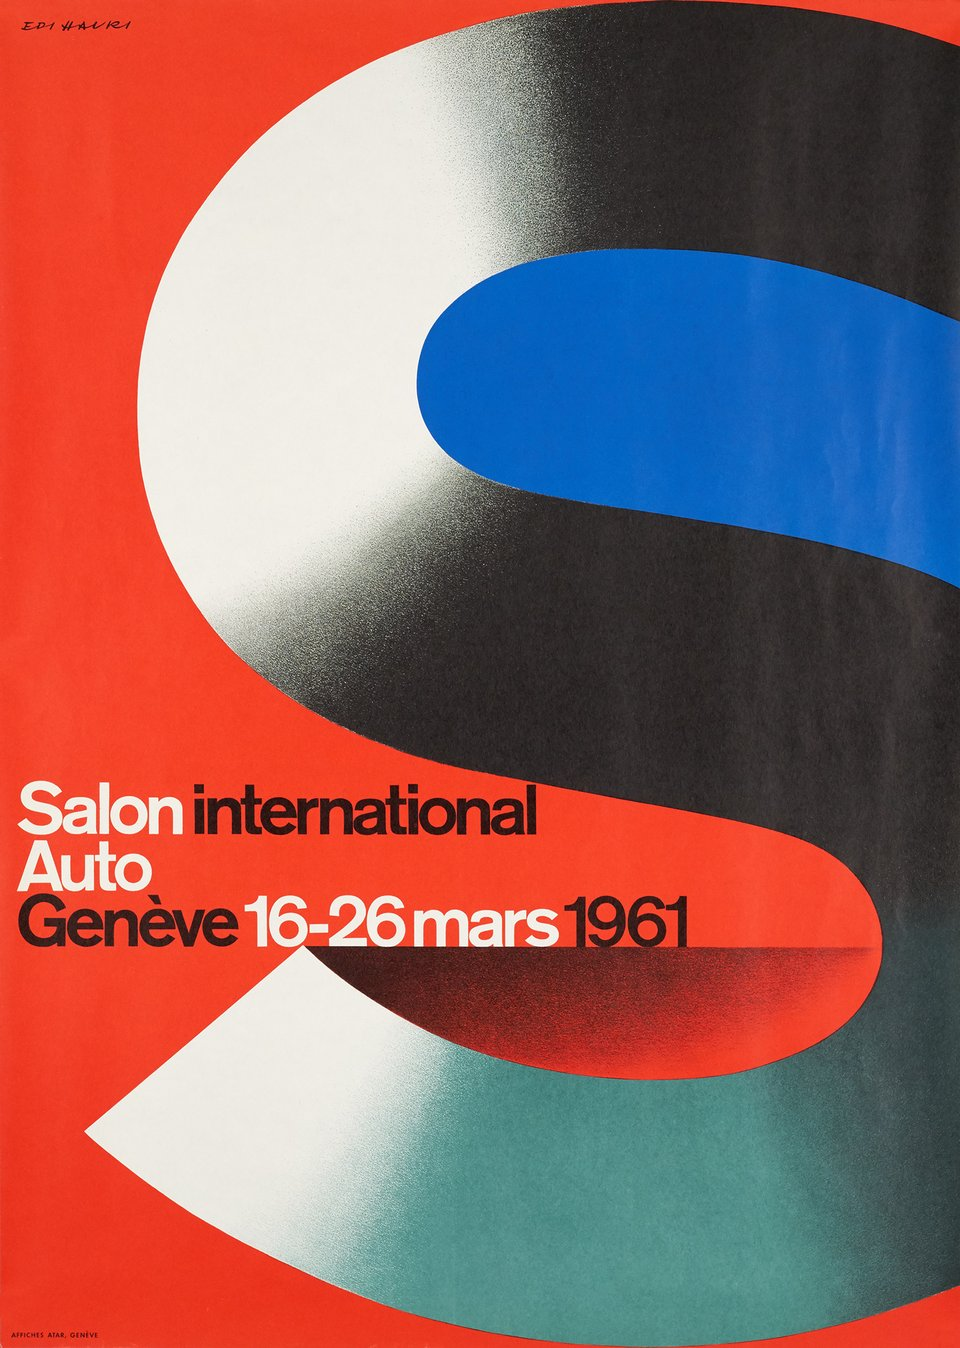 Salon international de l'automobile – Vintage poster – Edi HAURI – 1961